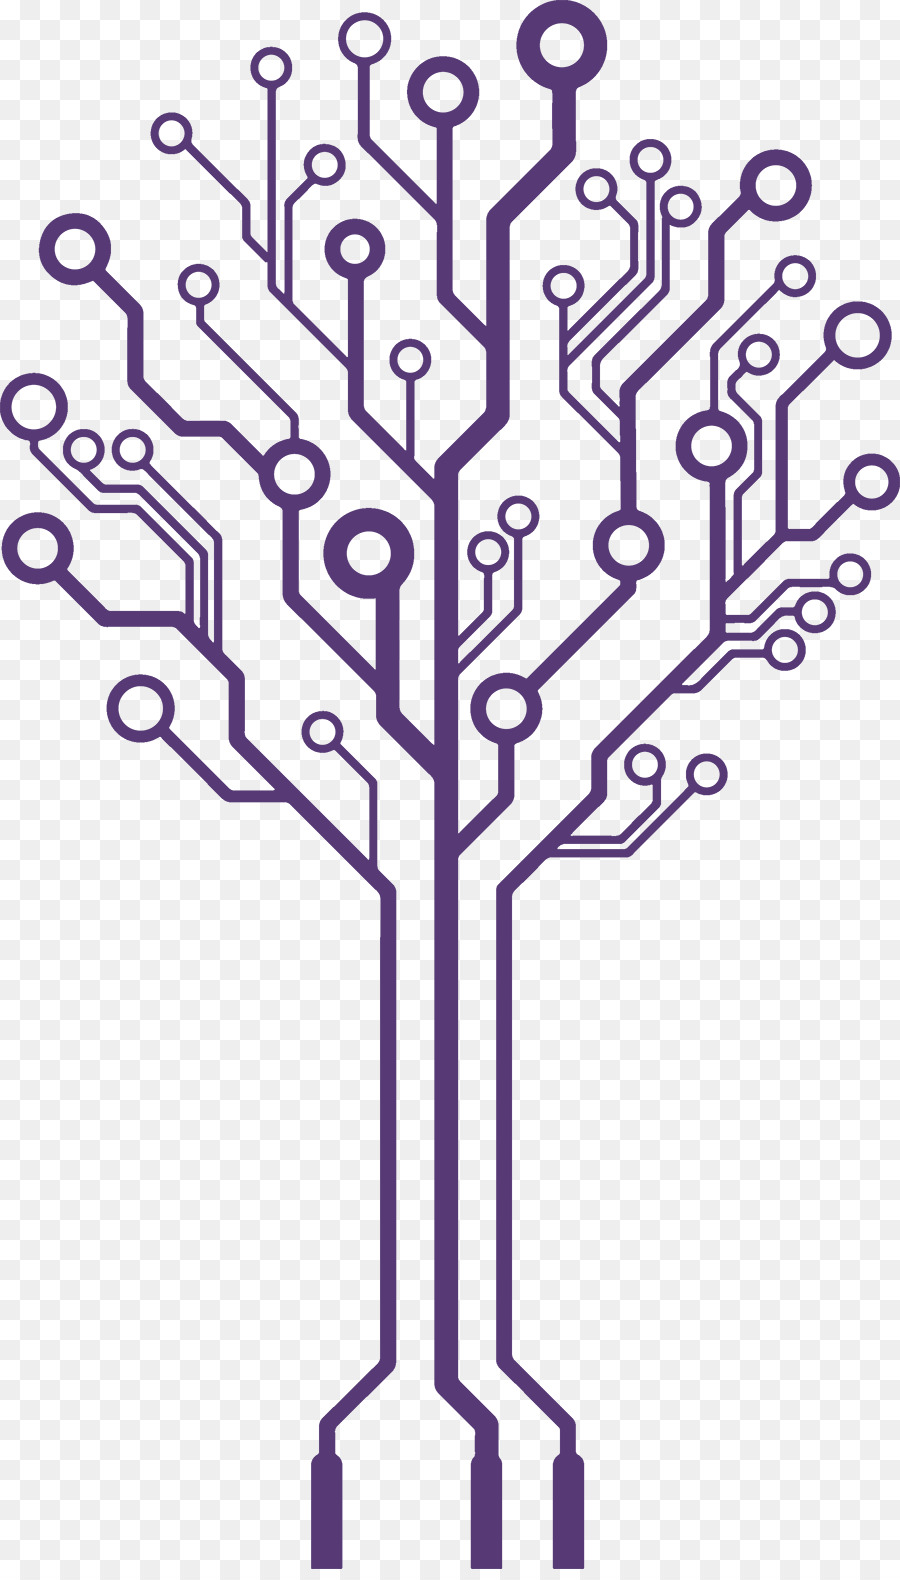 medium resolution of vector graphics printed circuit boards stock photography electronic circuit illustration circuit line